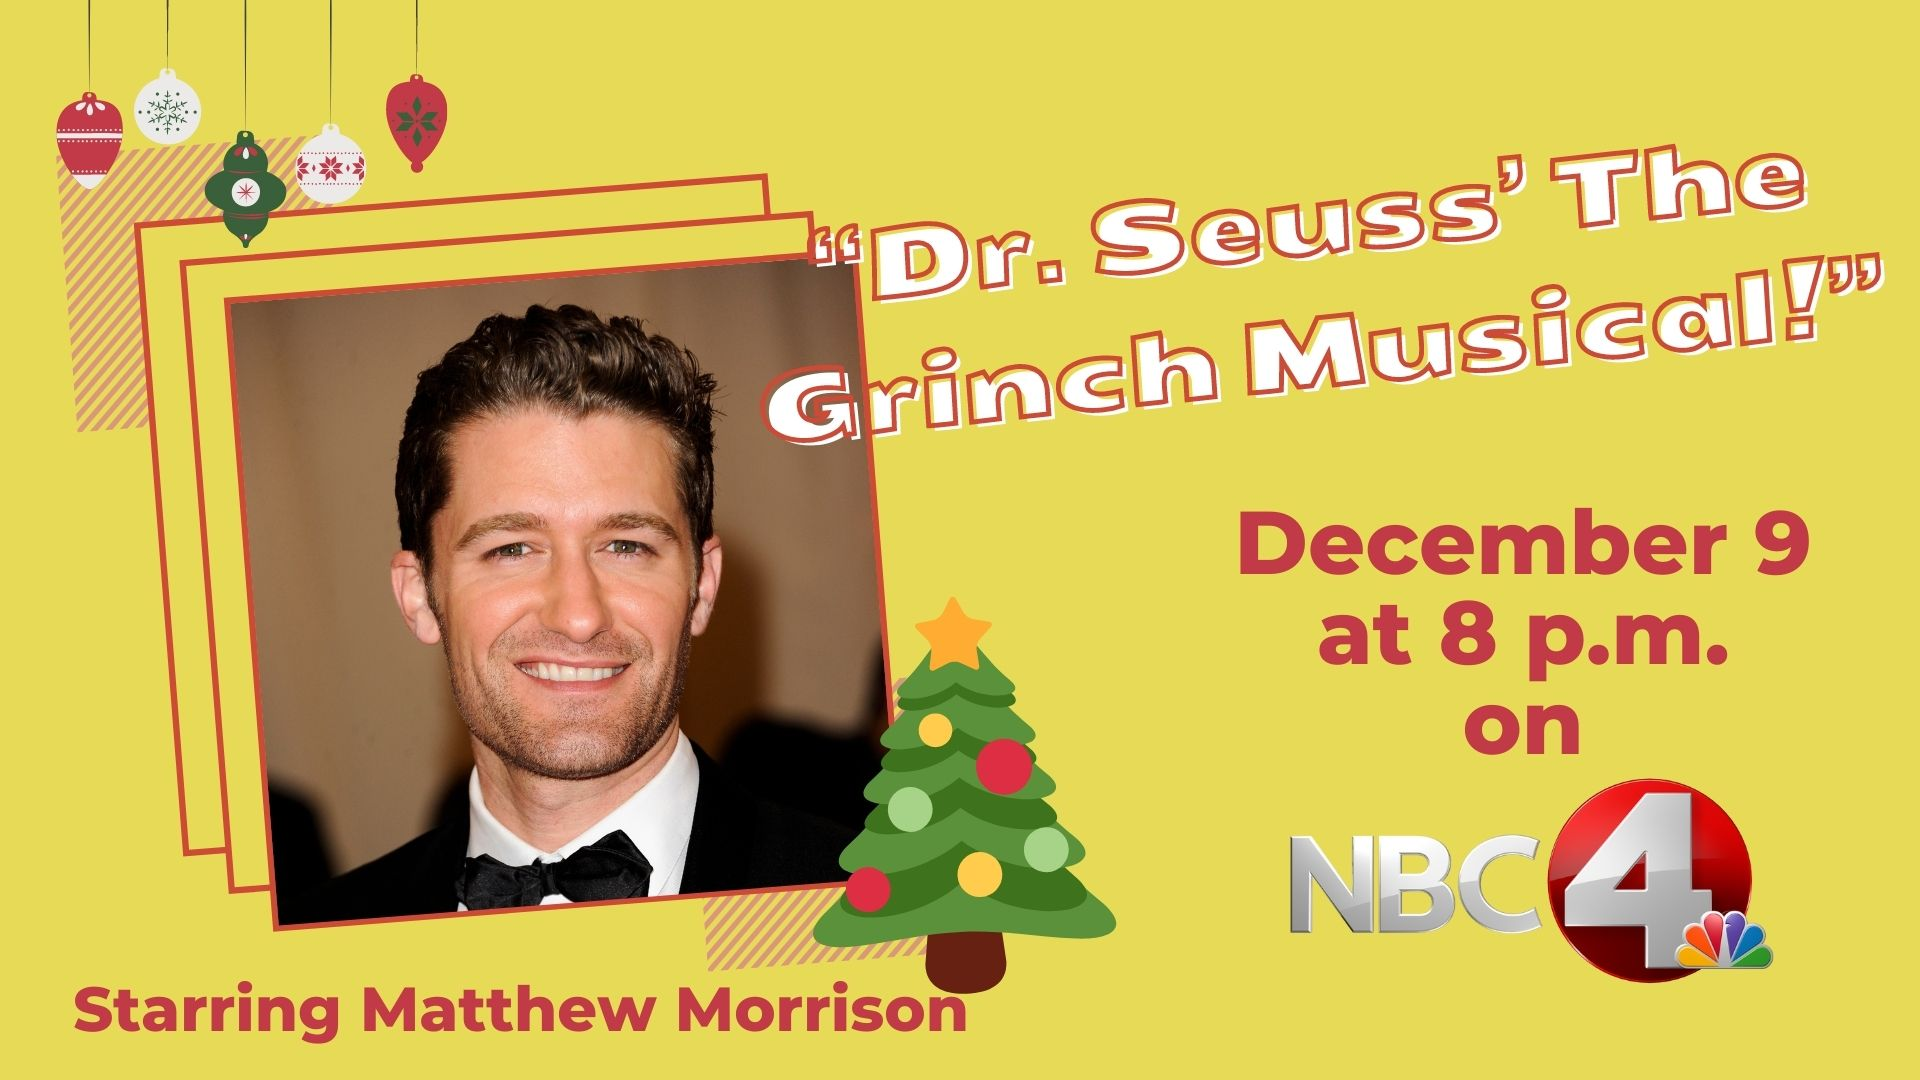 NBC to air holiday special 'Dr. Seuss' The Grinch Musical!' | NBC4